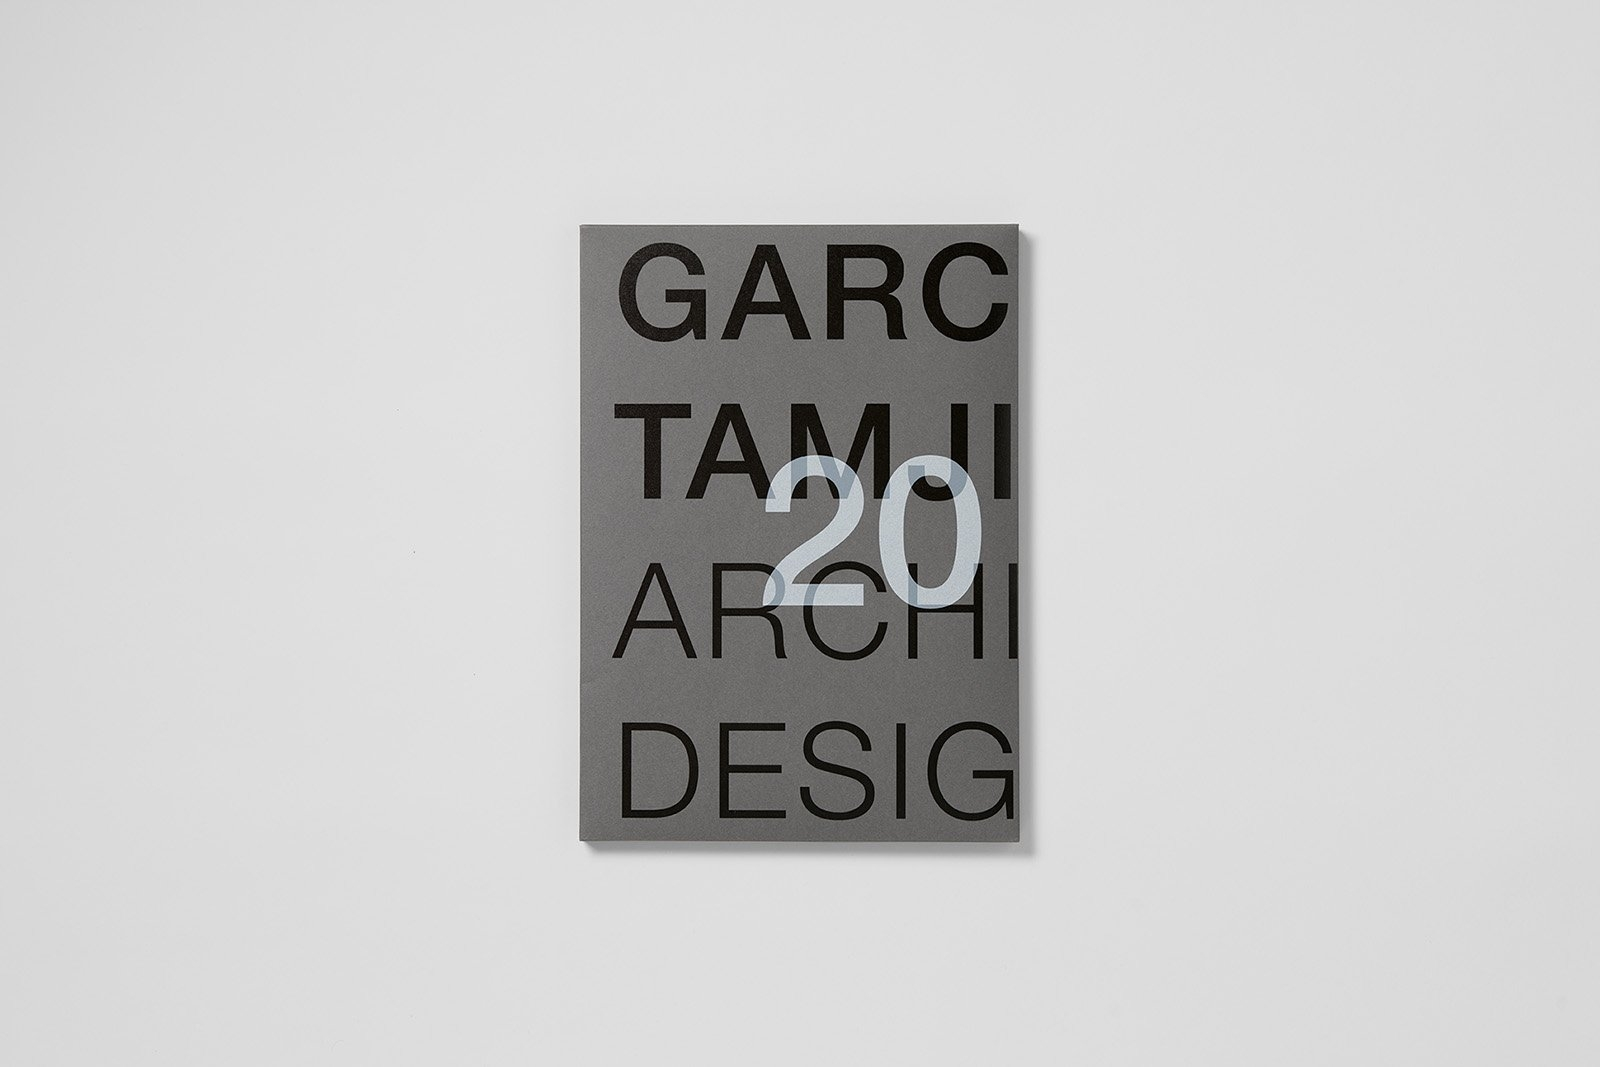 Garcia newest project building  - minimalissimo | ello